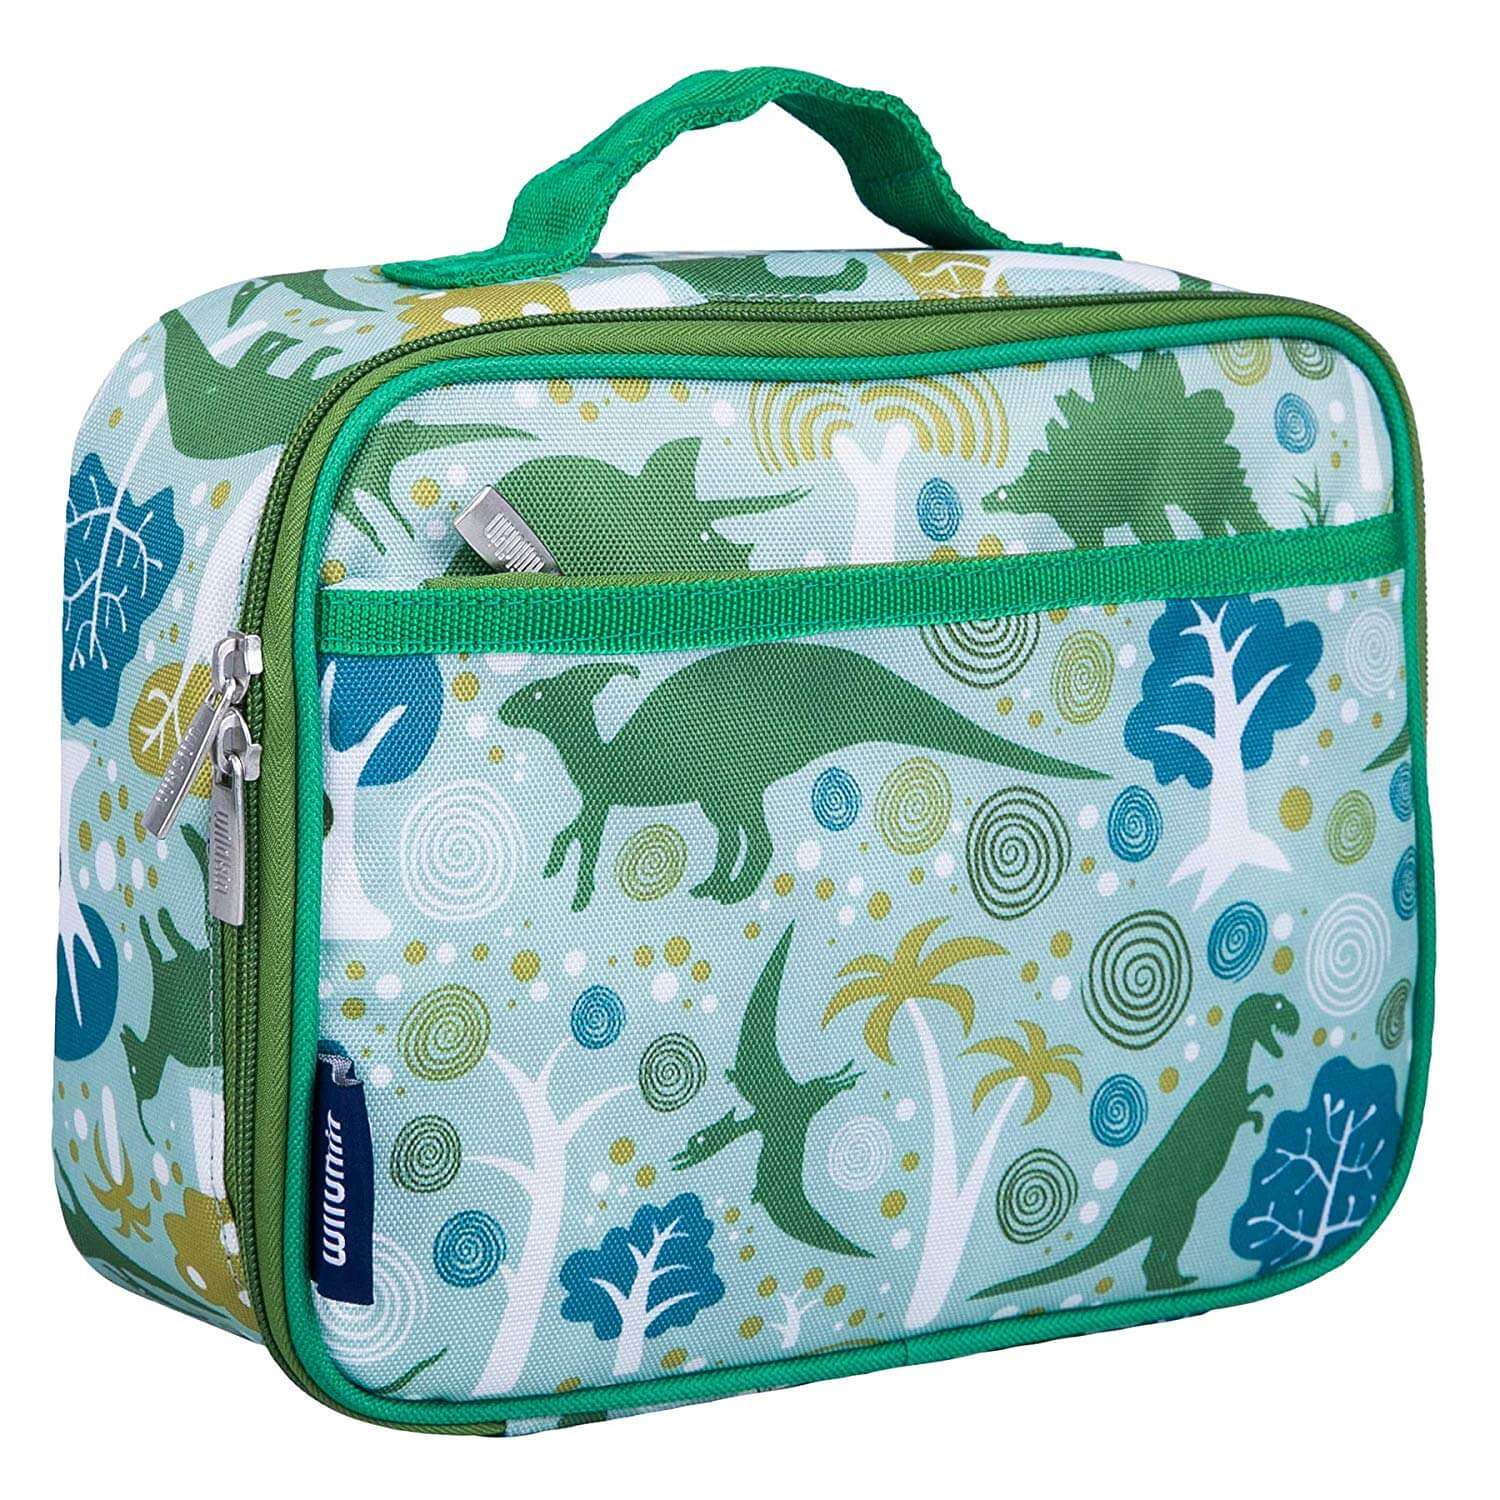 Wildkin Lunch Box, Insulated